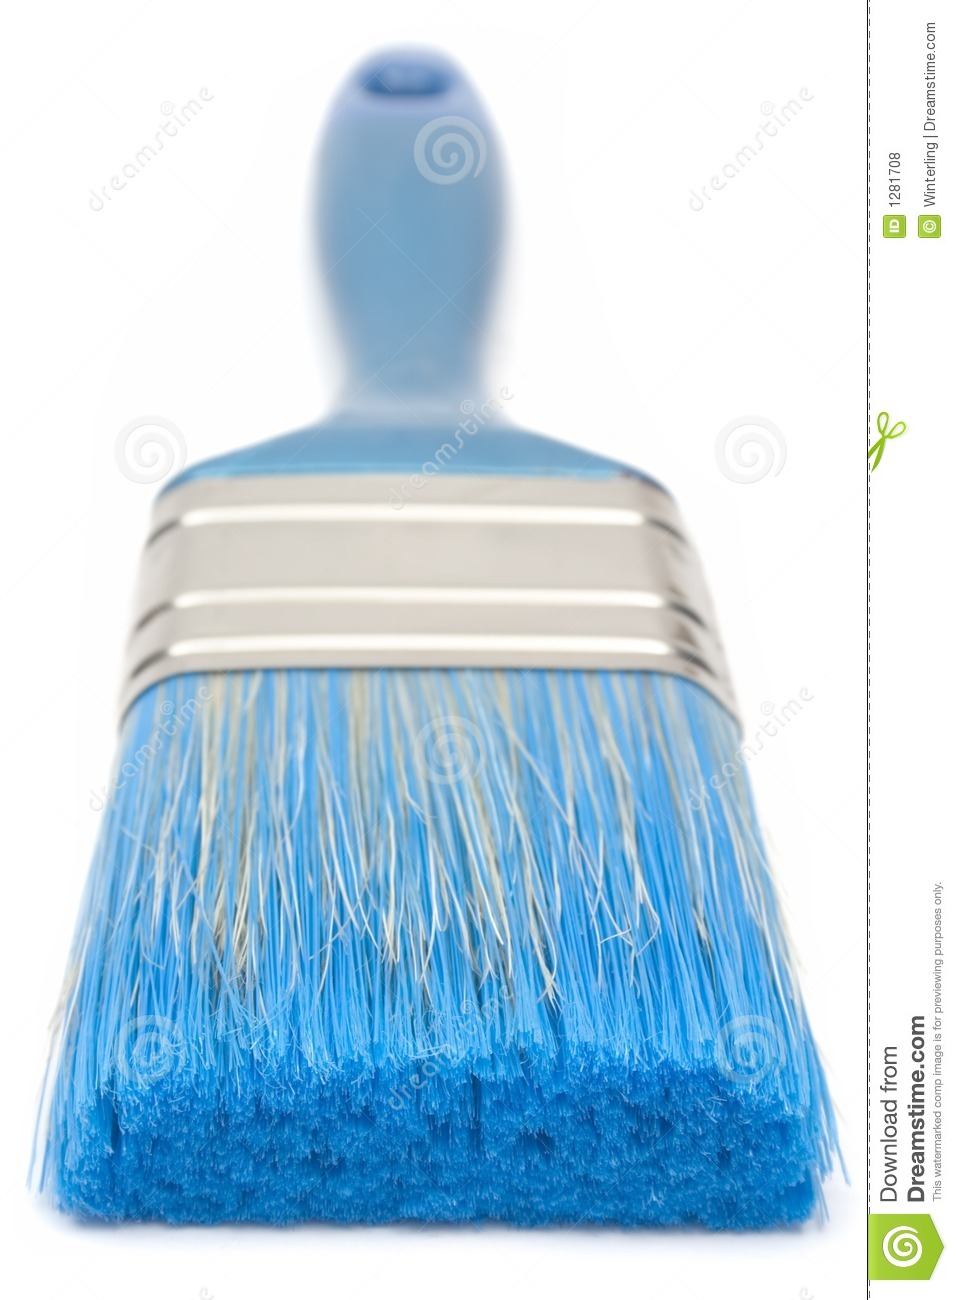 Darkbluepaintbrush: Blue Paint Brush (Front View) Royalty Free Stock Photos